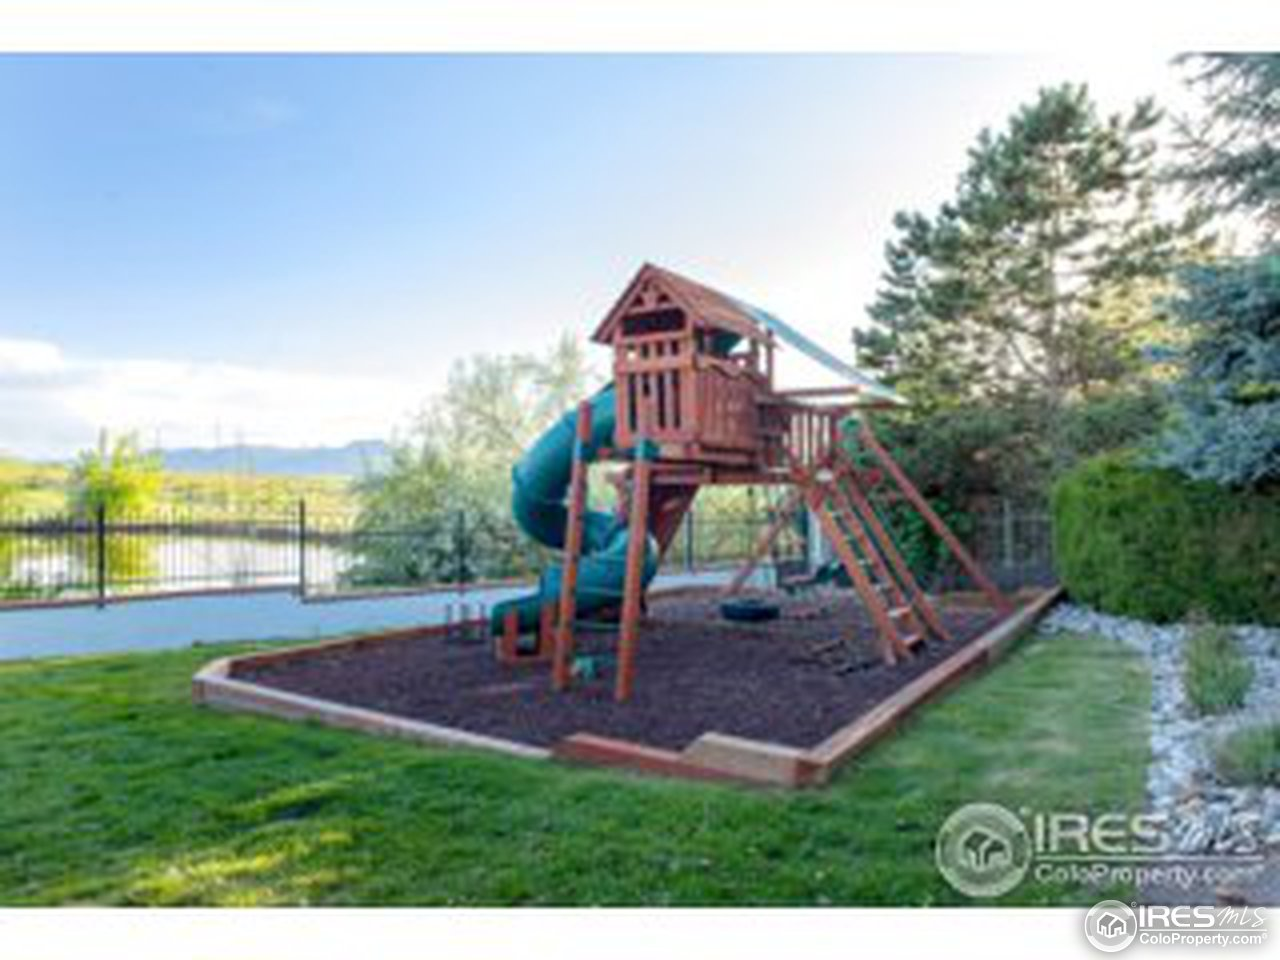 New play structure